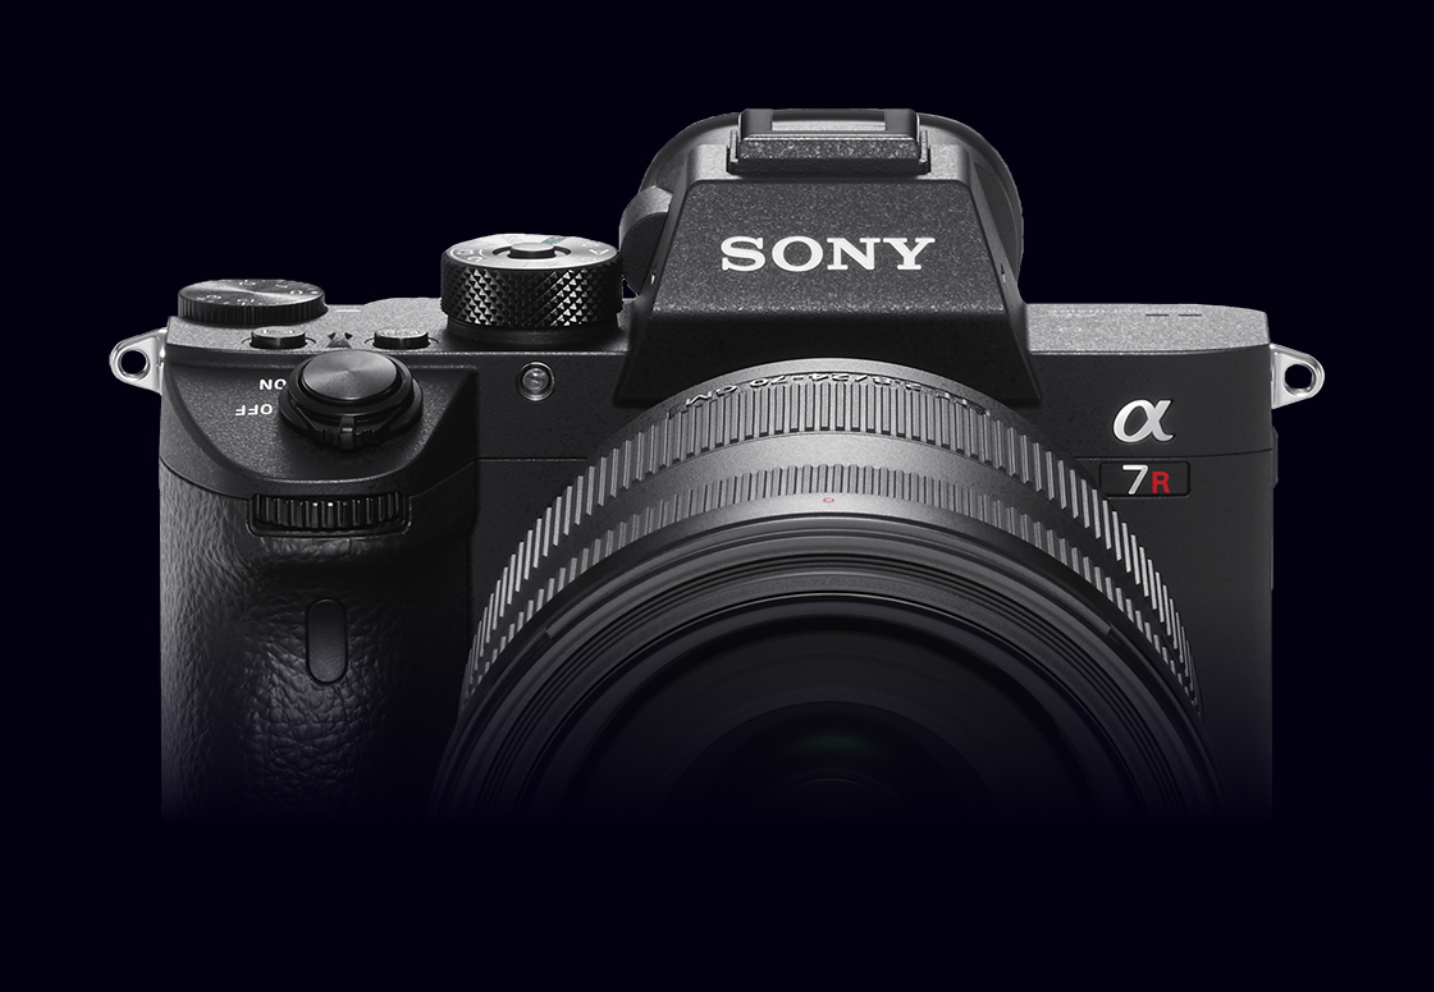 http://thedigitalstory.com/2018/08/16/sony-alpha.png